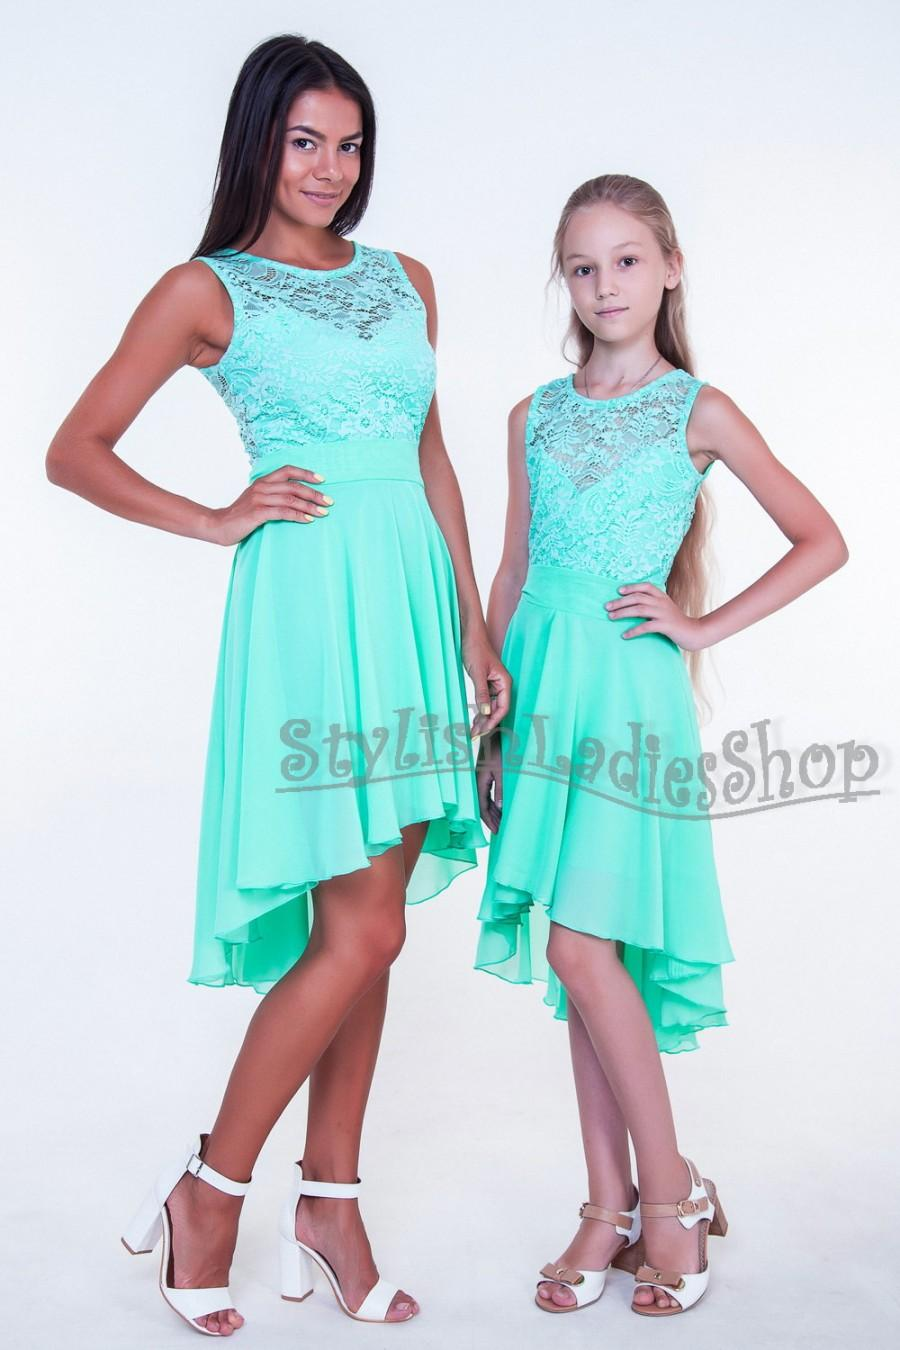 Mint bridesmaid dress lace bridesmaid dress chiffon bridesmaid dress mint bridesmaid dress lace bridesmaid dress chiffon bridesmaid dress short bridesmaid dress asymmetrical bridesmaid dress mint wedding dress ombrellifo Gallery